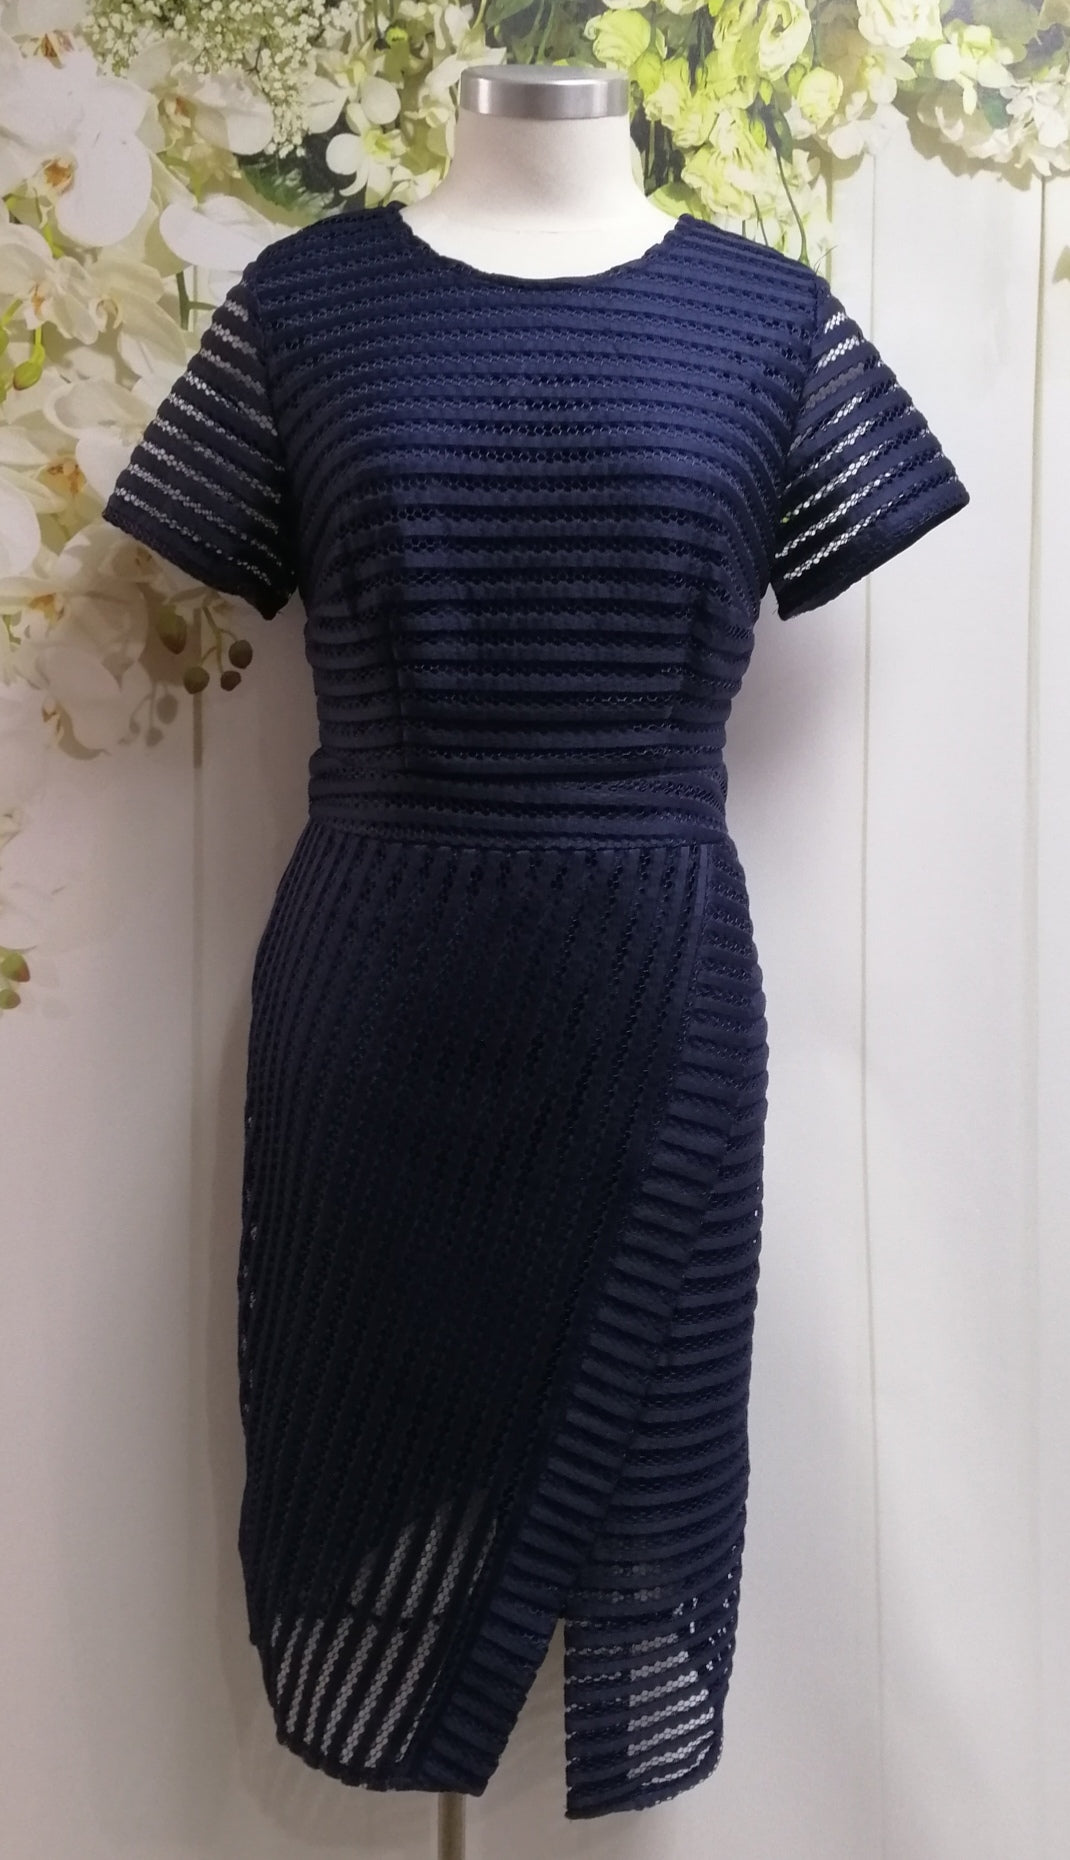 Yesadress Evening Dress - Navy - Fashion Focus